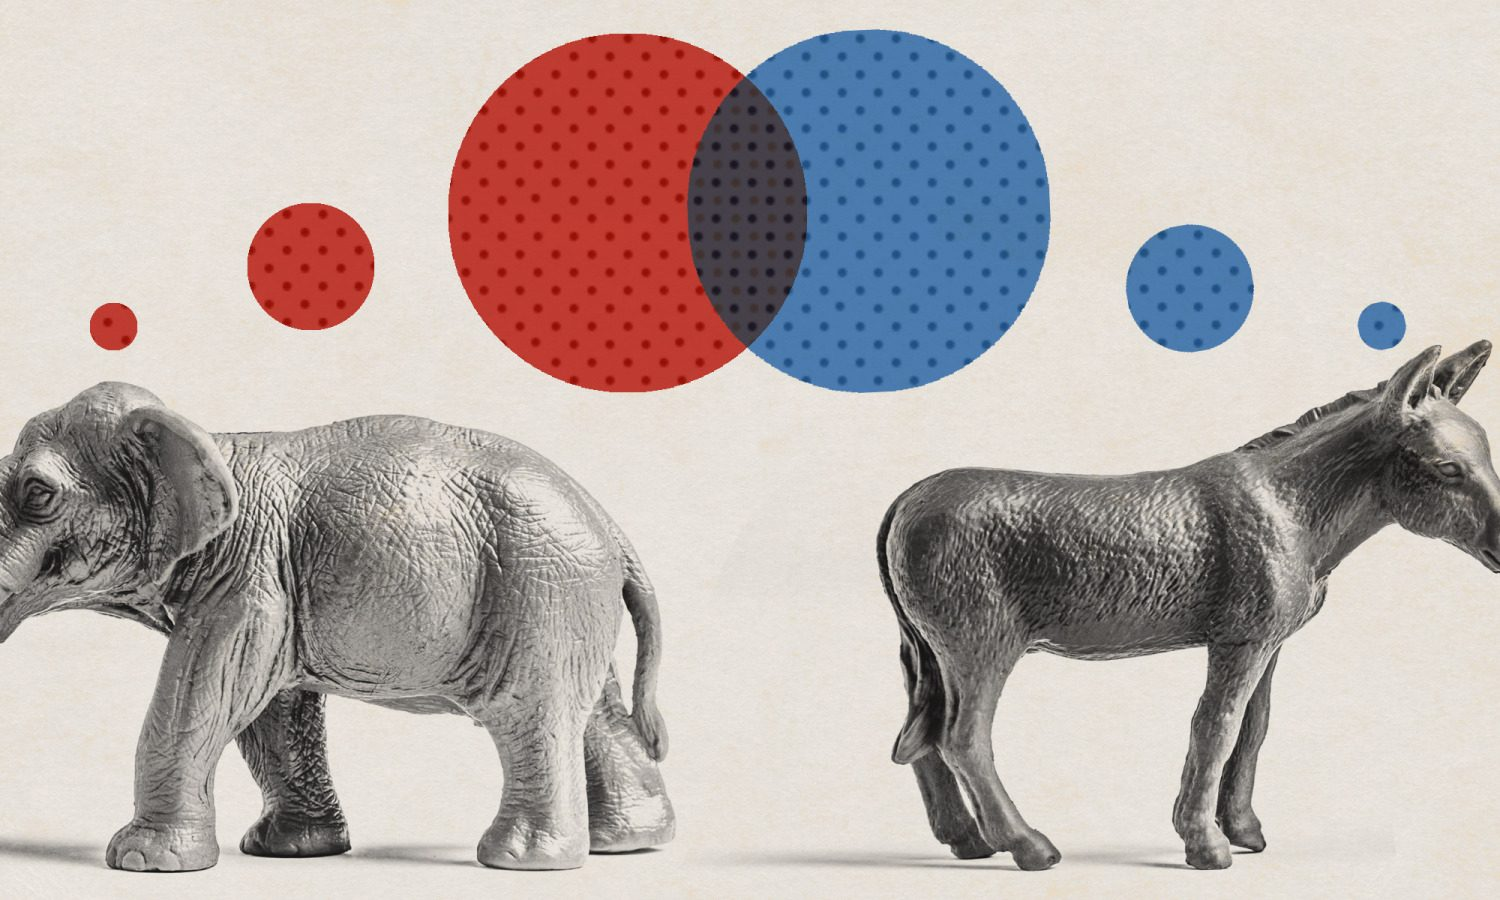 Political Polarization: A Growing Problem